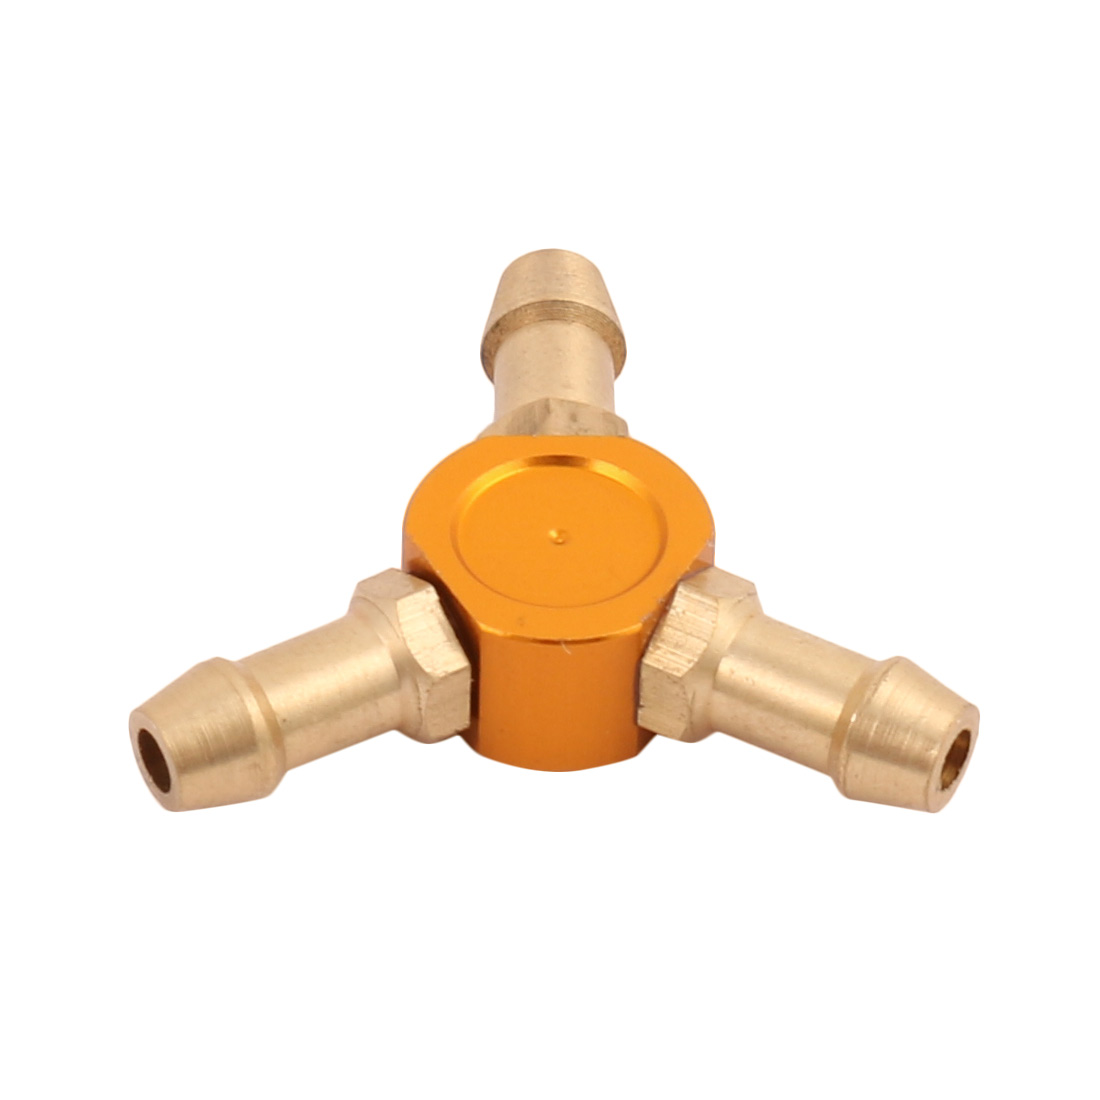 2.2mm x 4.8mm x 23mm Orange Y-Shaped Water Fuel Air Splitter for RC Boat